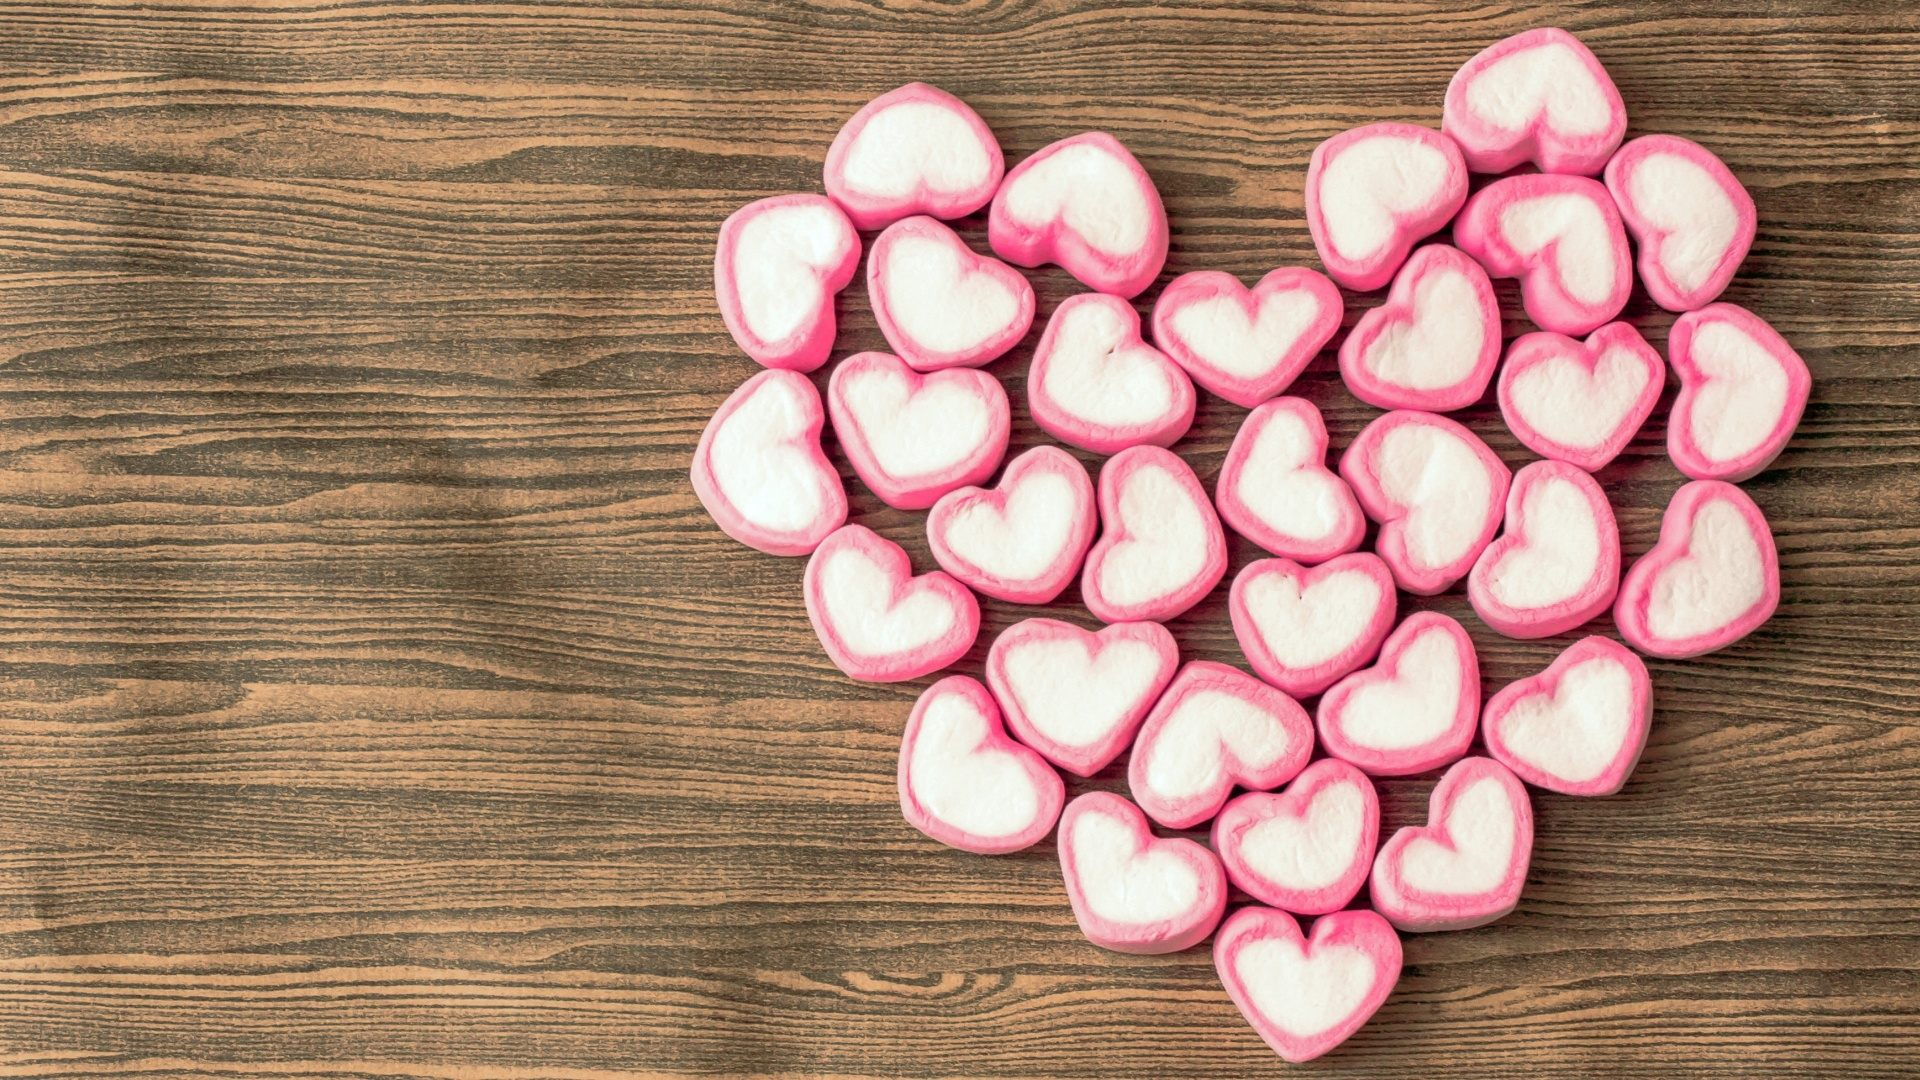 Candy hearts desktop wallpaper hd 61763 1920x1080 px candy hearts desktop wallpaper hd 61763 voltagebd Images